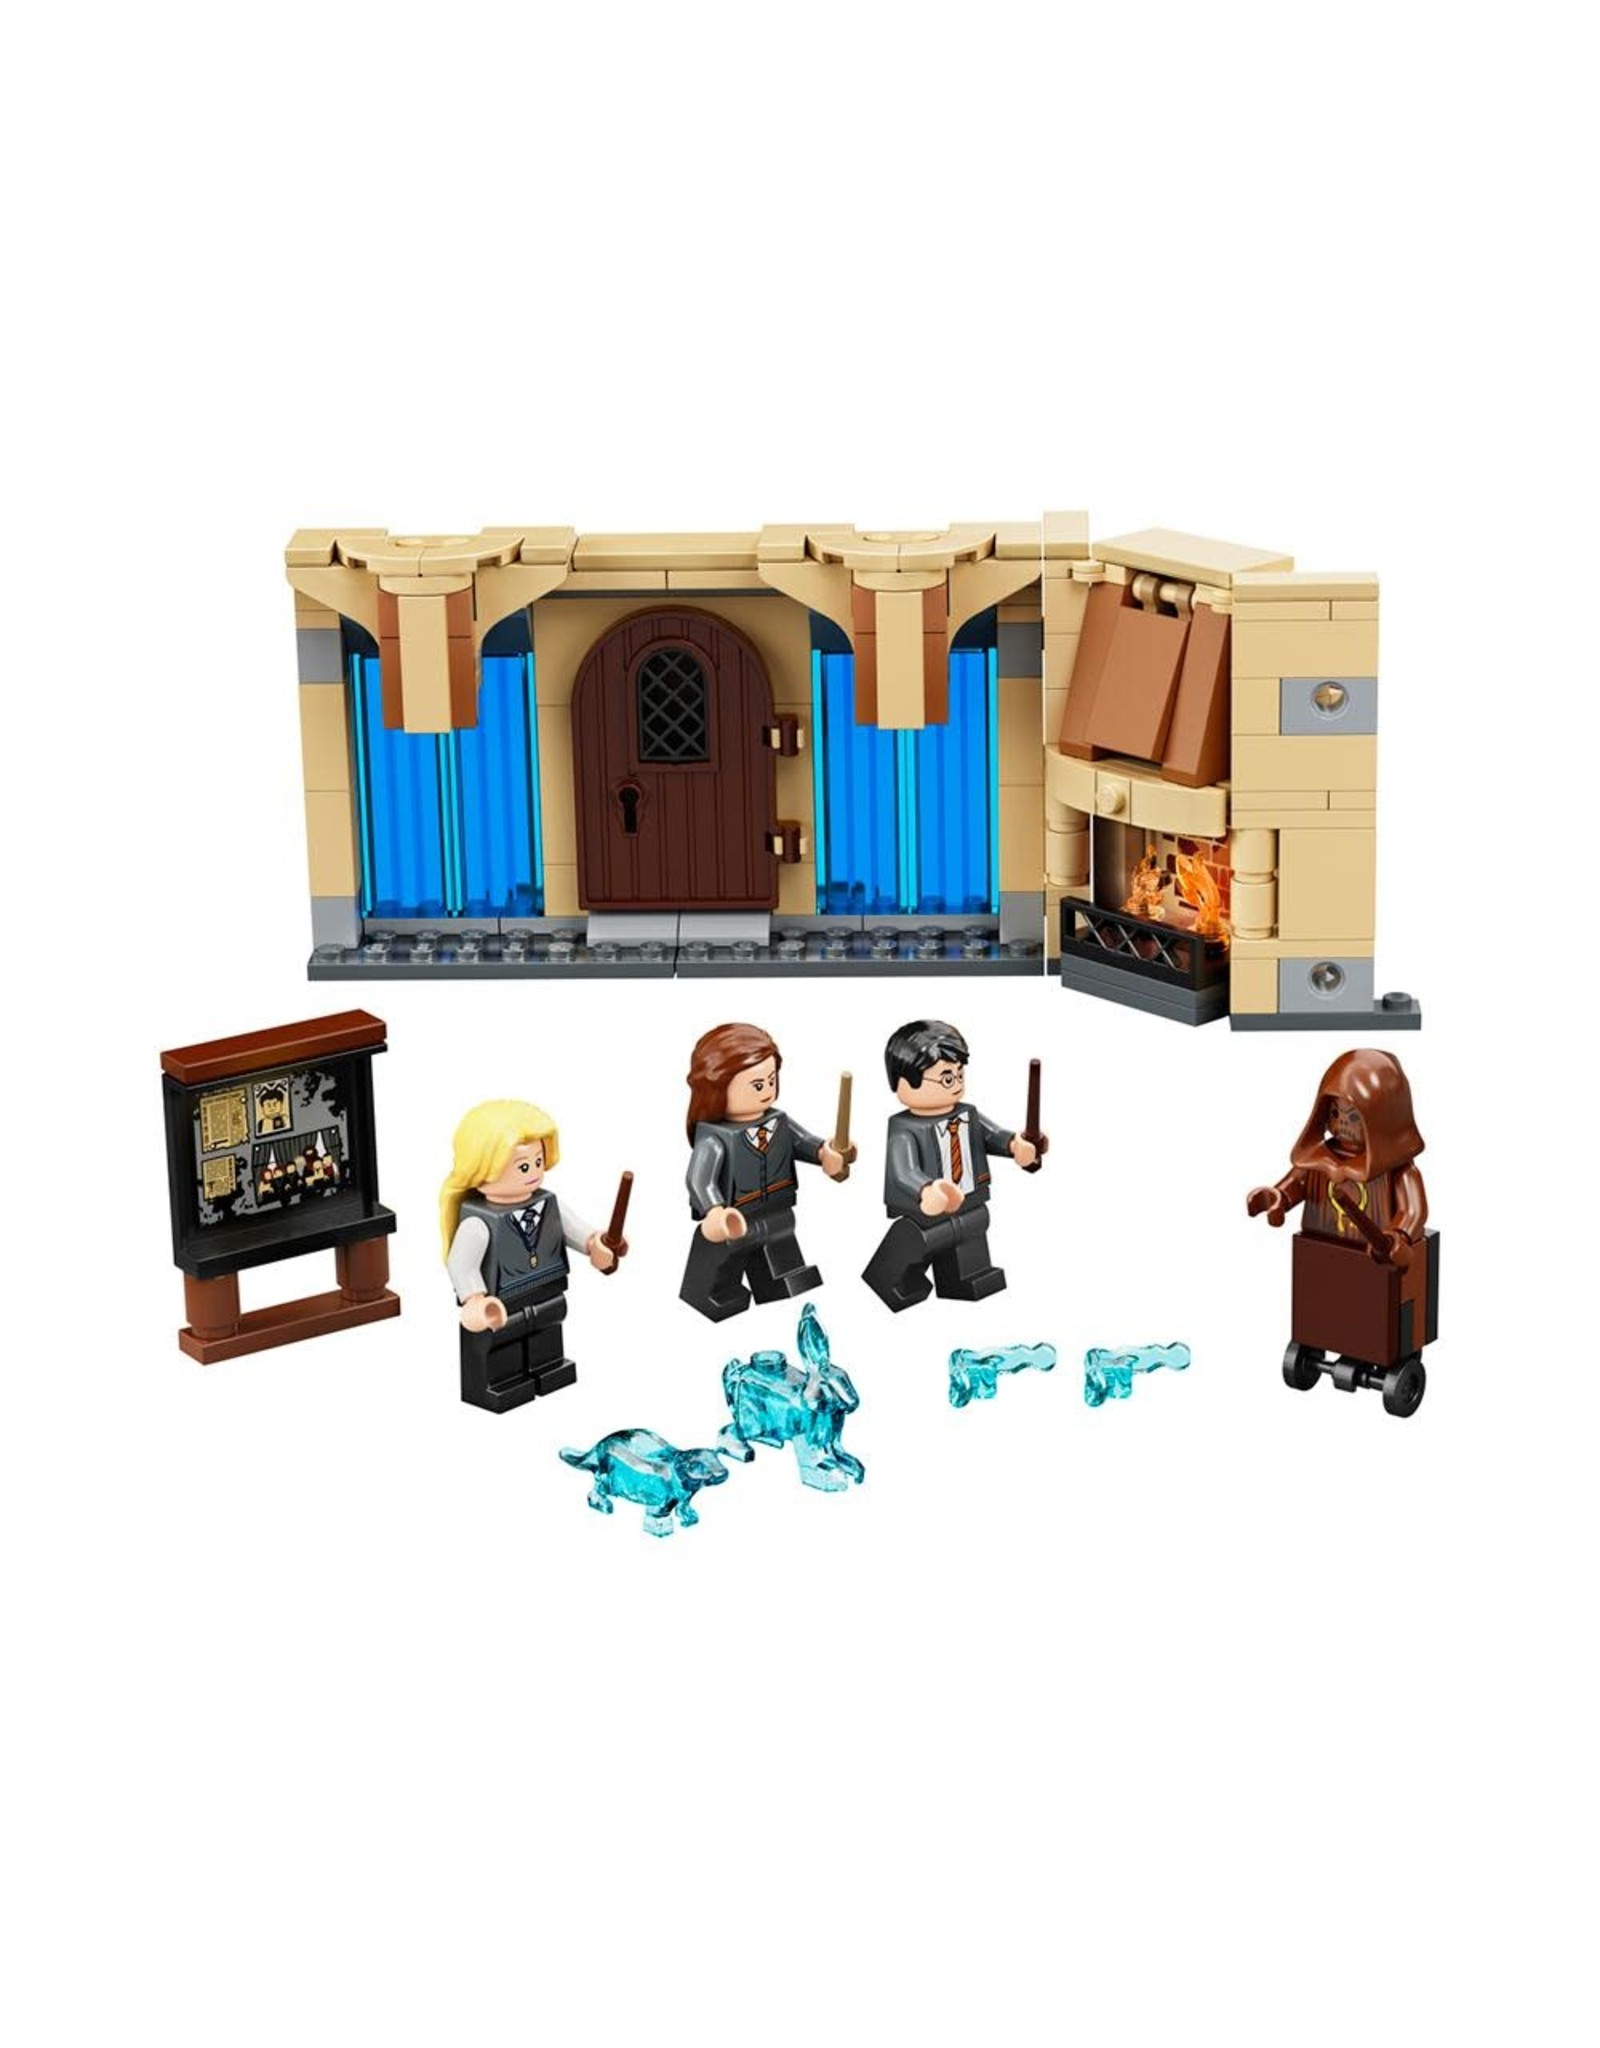 LEGO Harry Potter - 75966 - Hogwarts Room Of Requirement